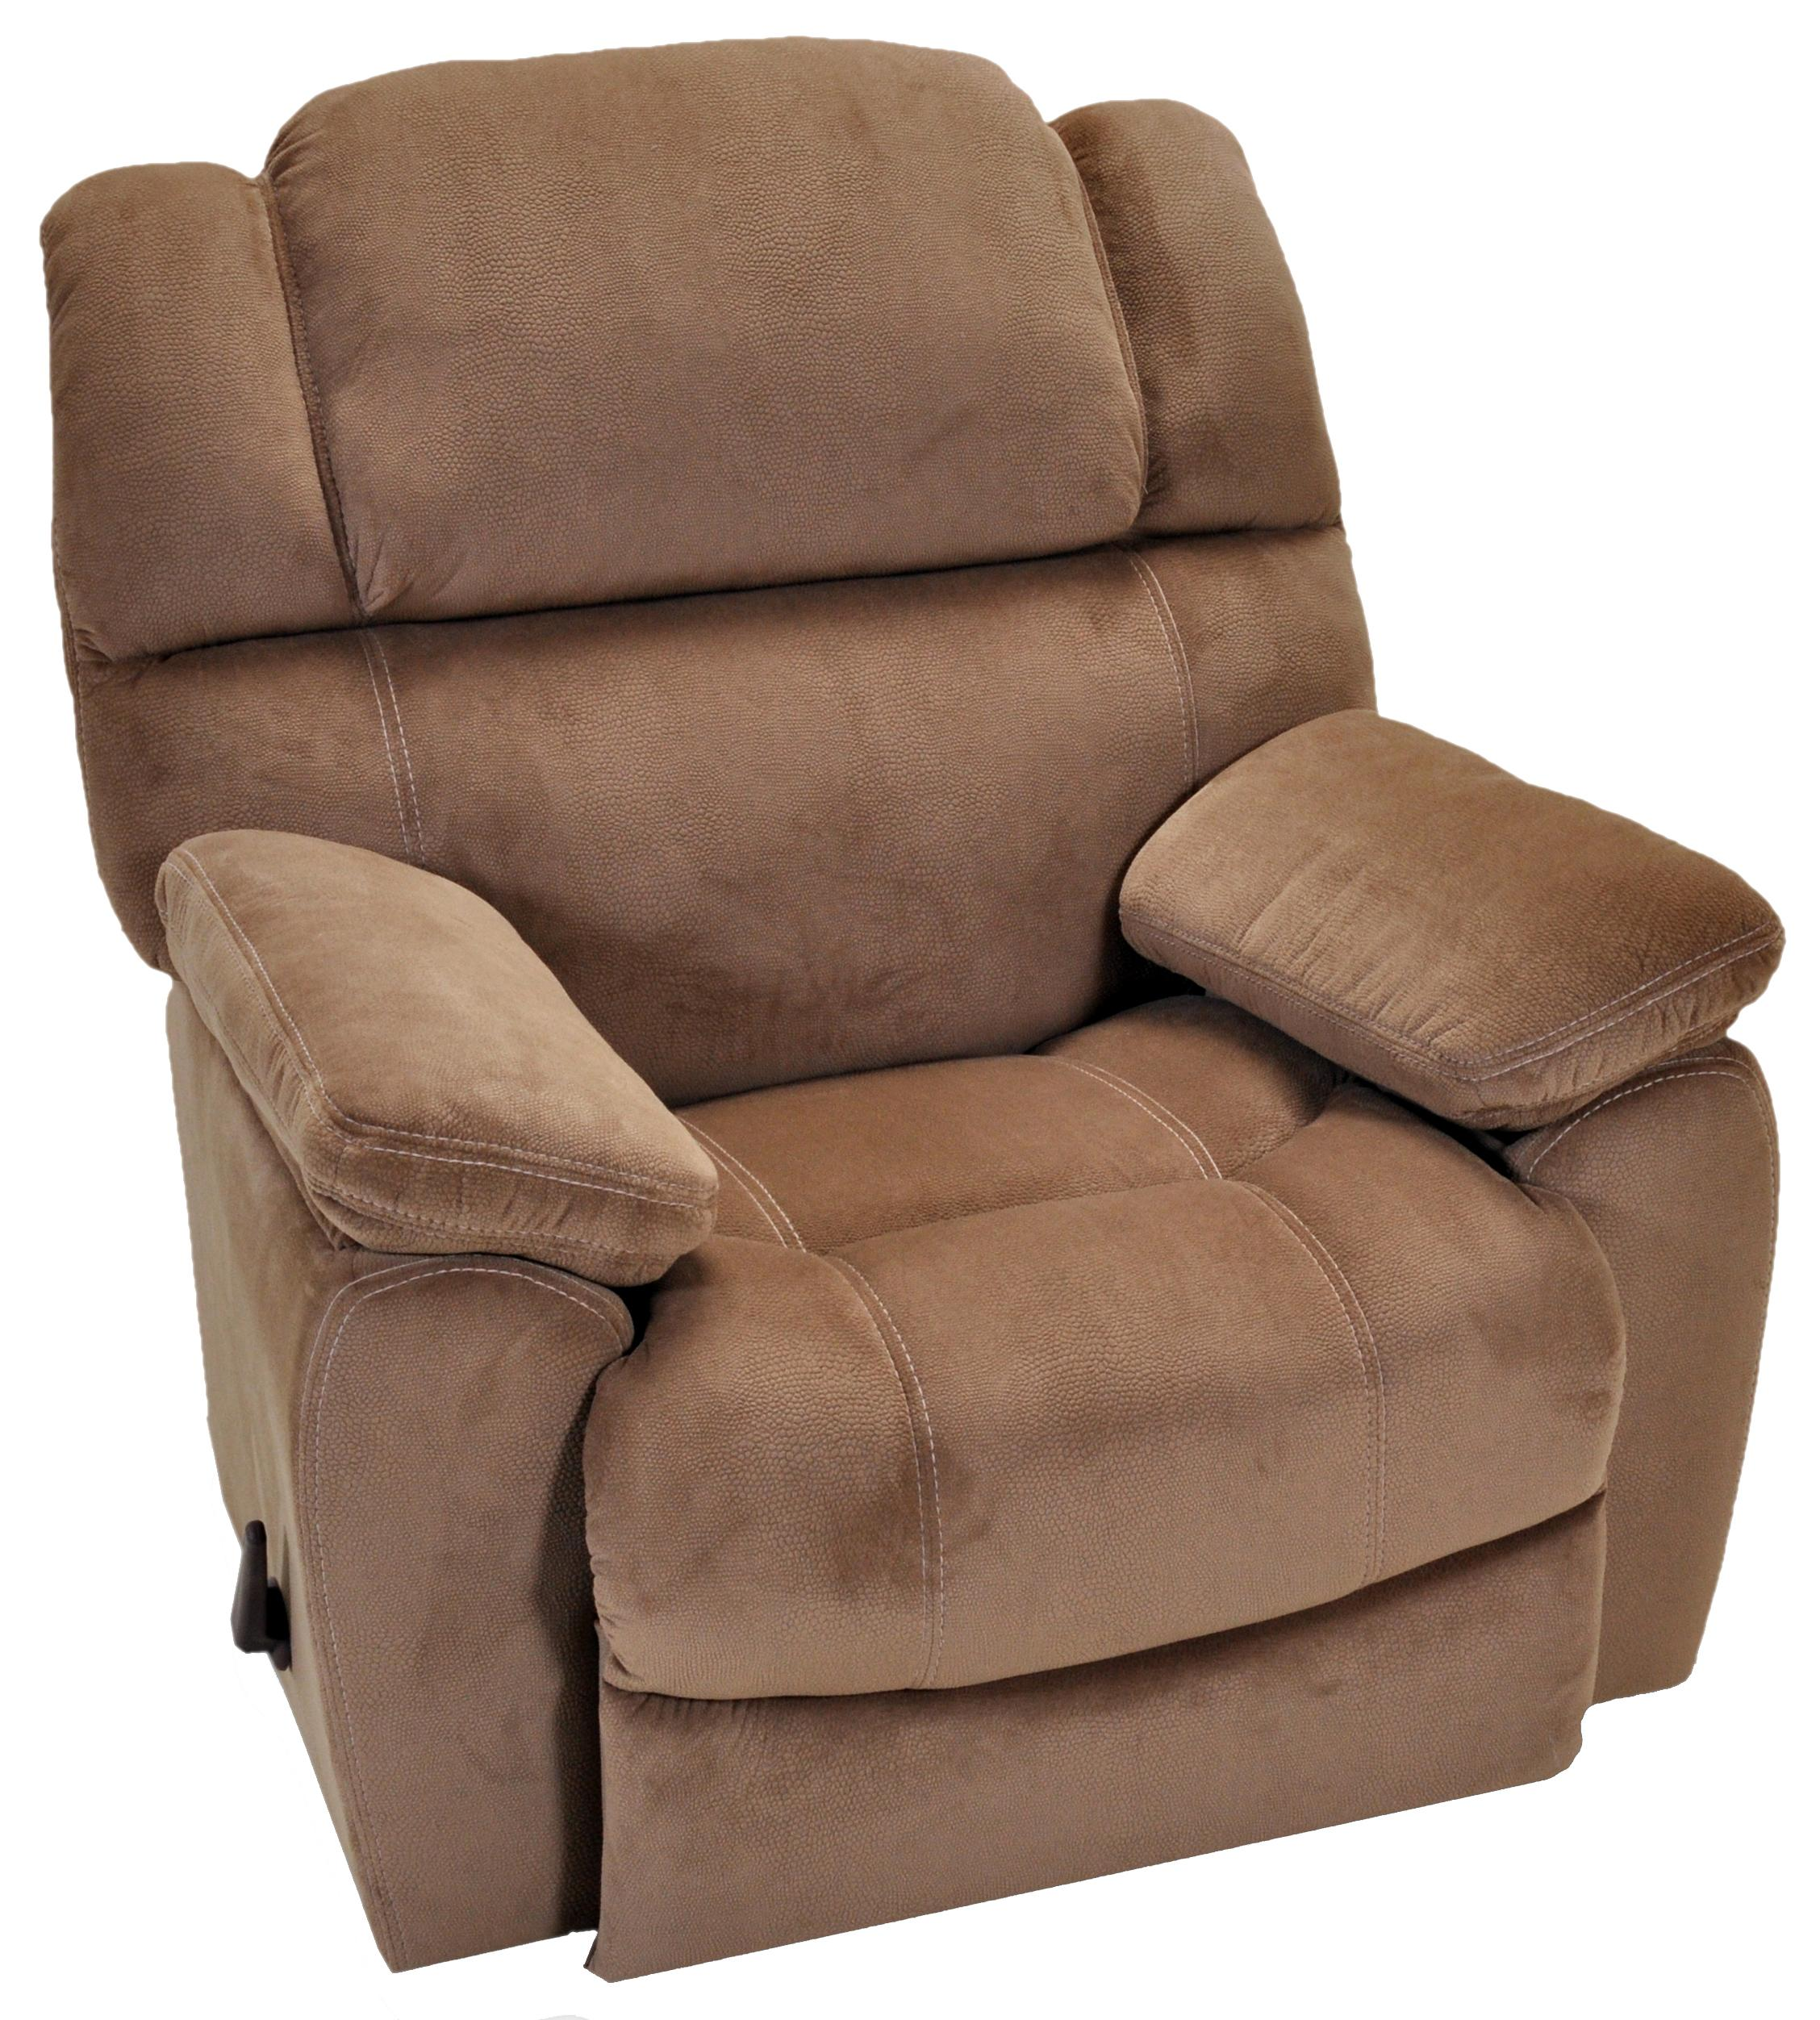 Franklin rocker recliners comfortable rocker recliner with sport style seam stitching miskelly - Stylish rocker recliner ...